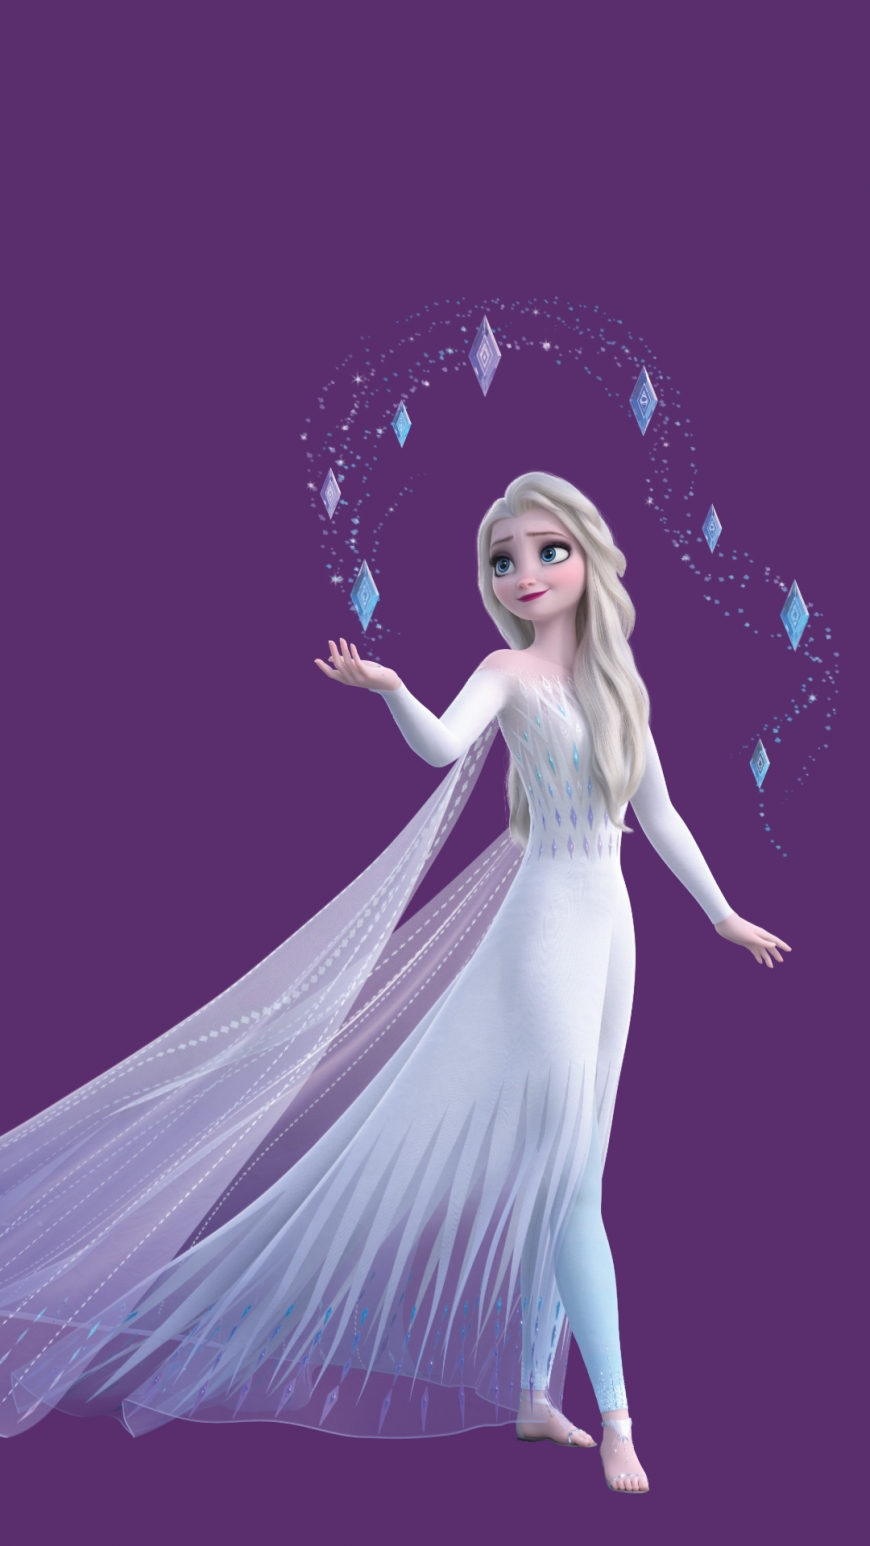 Frozen 2 Hd Wallpaper Elsa White Dress Hair Down Mobile In 2020 Disney Princess Pictures Disney Princess Wallpaper Disney Princess Drawings